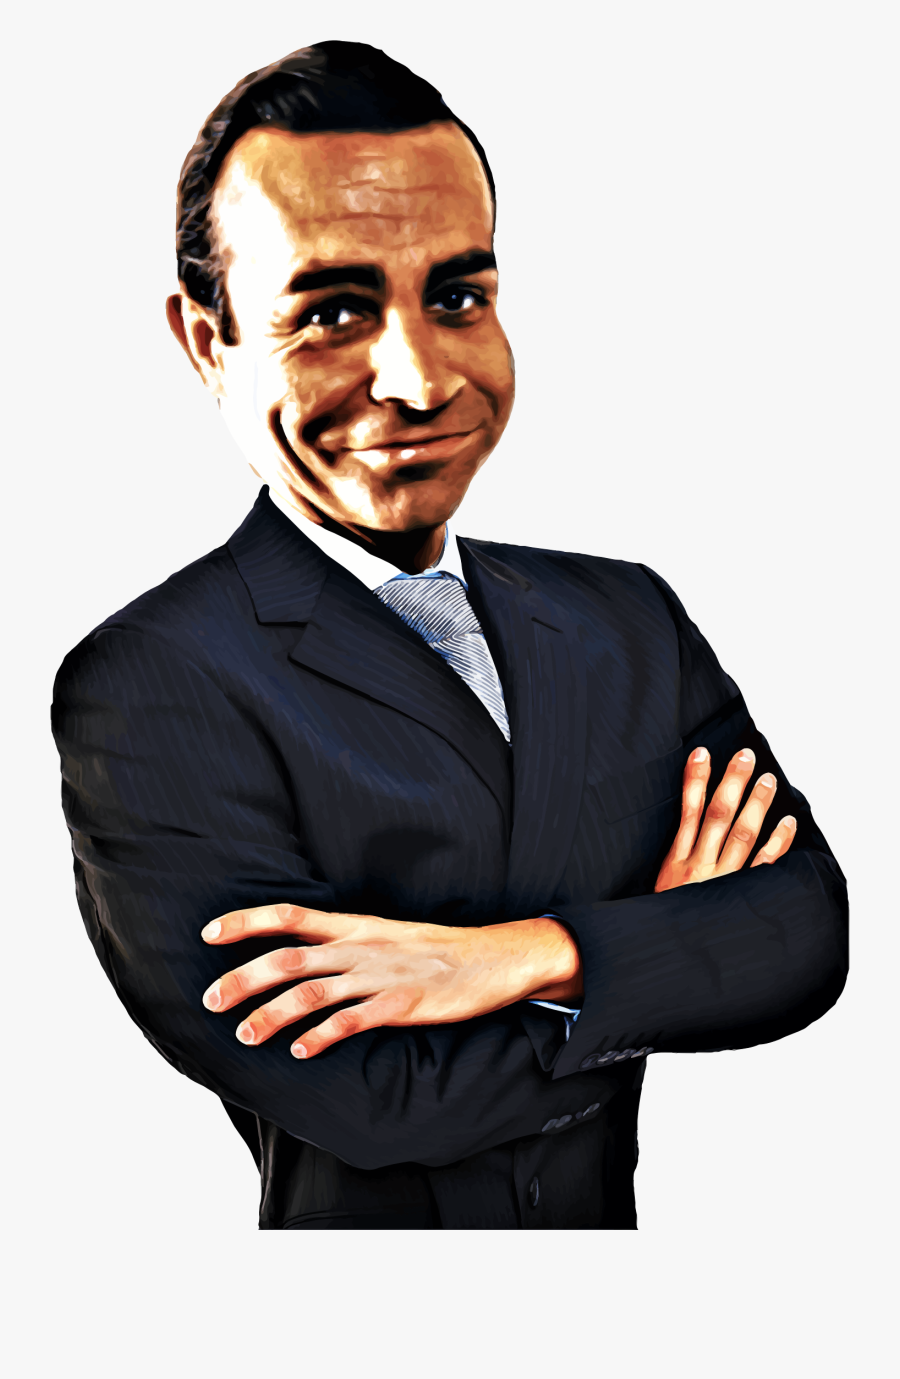 Sean Connery Caricature Icons Png - Sean Connery, Transparent Clipart